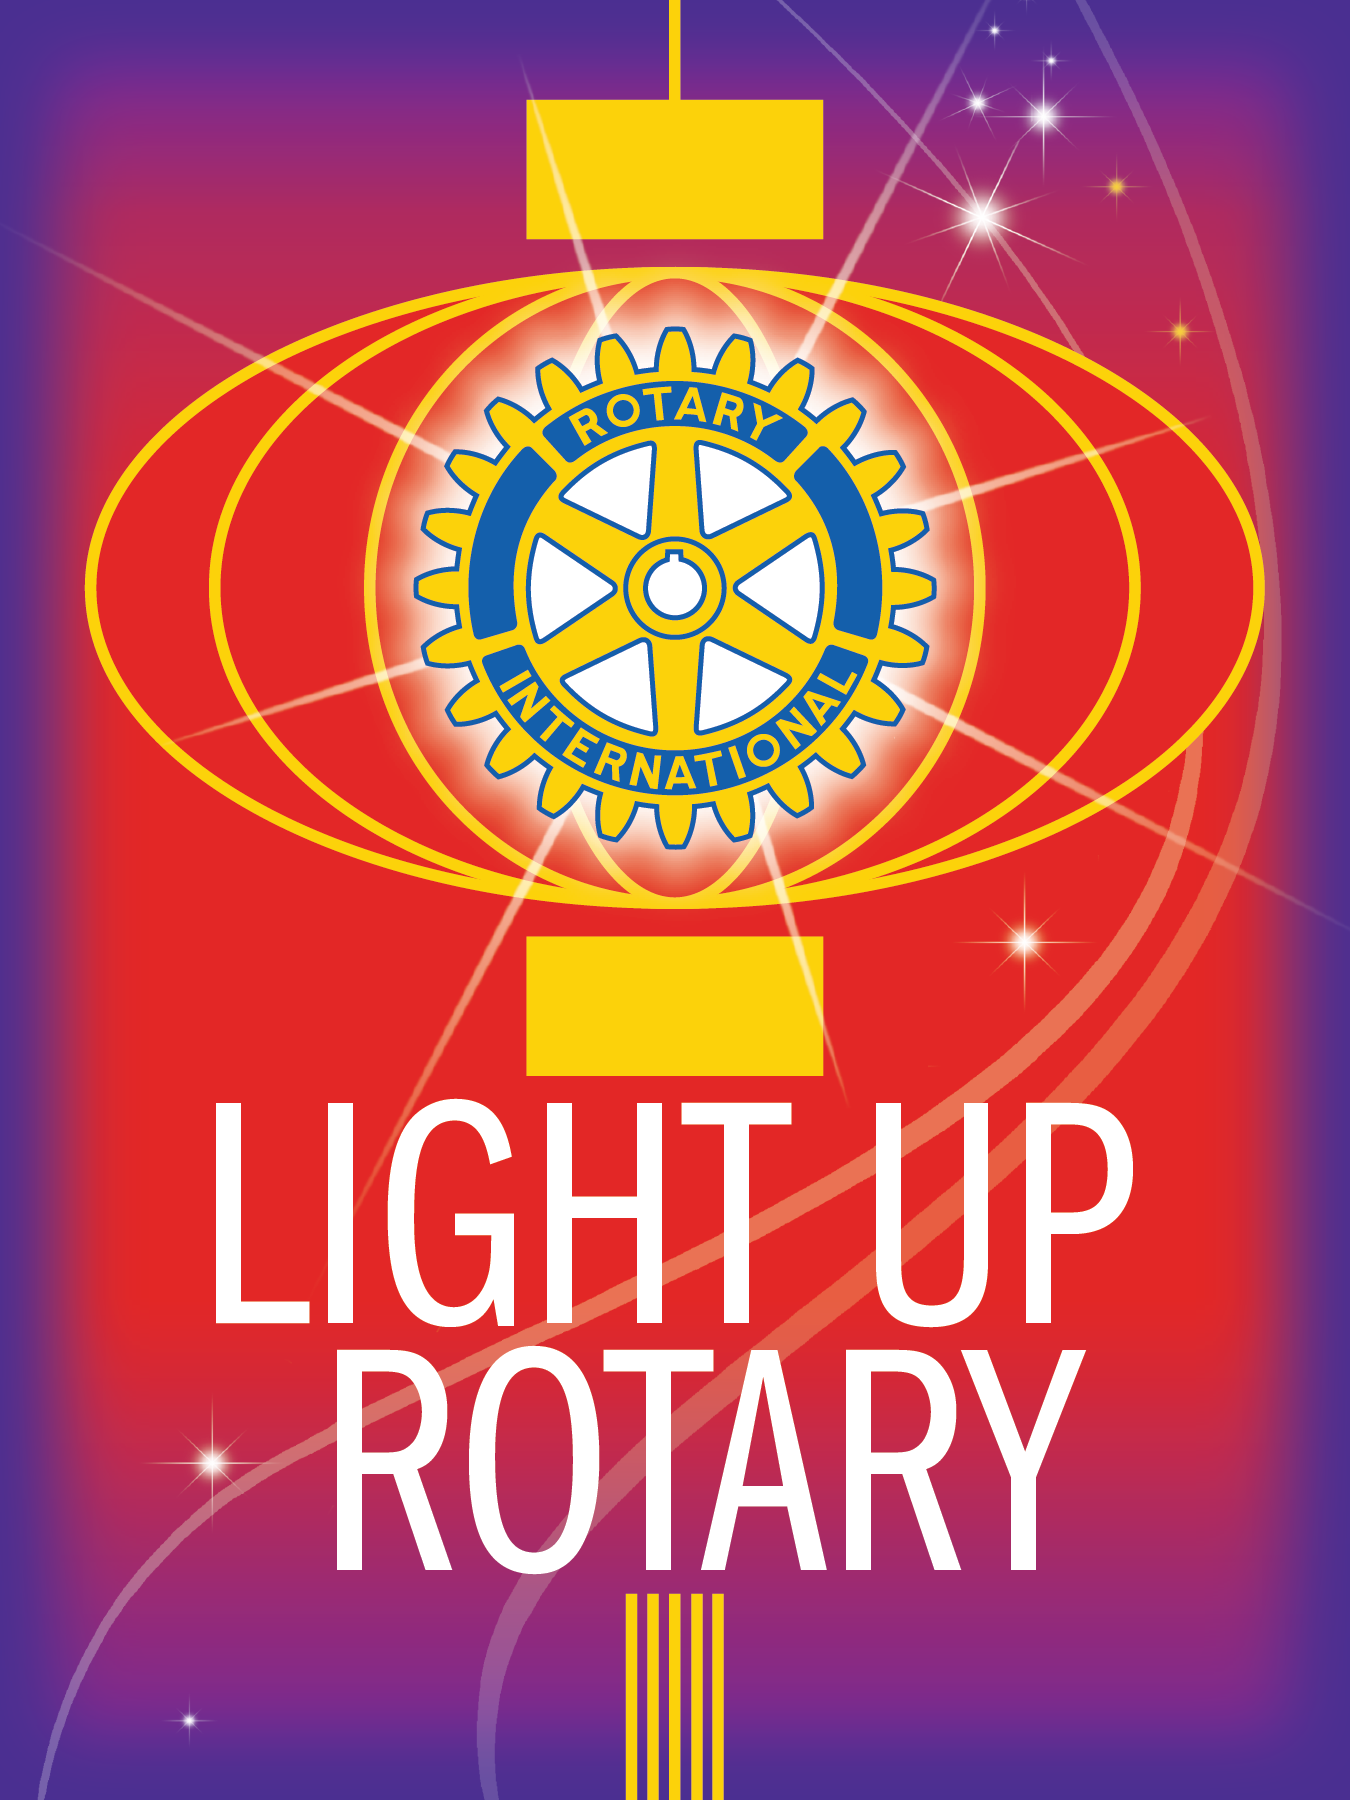 Rochester Rotary club